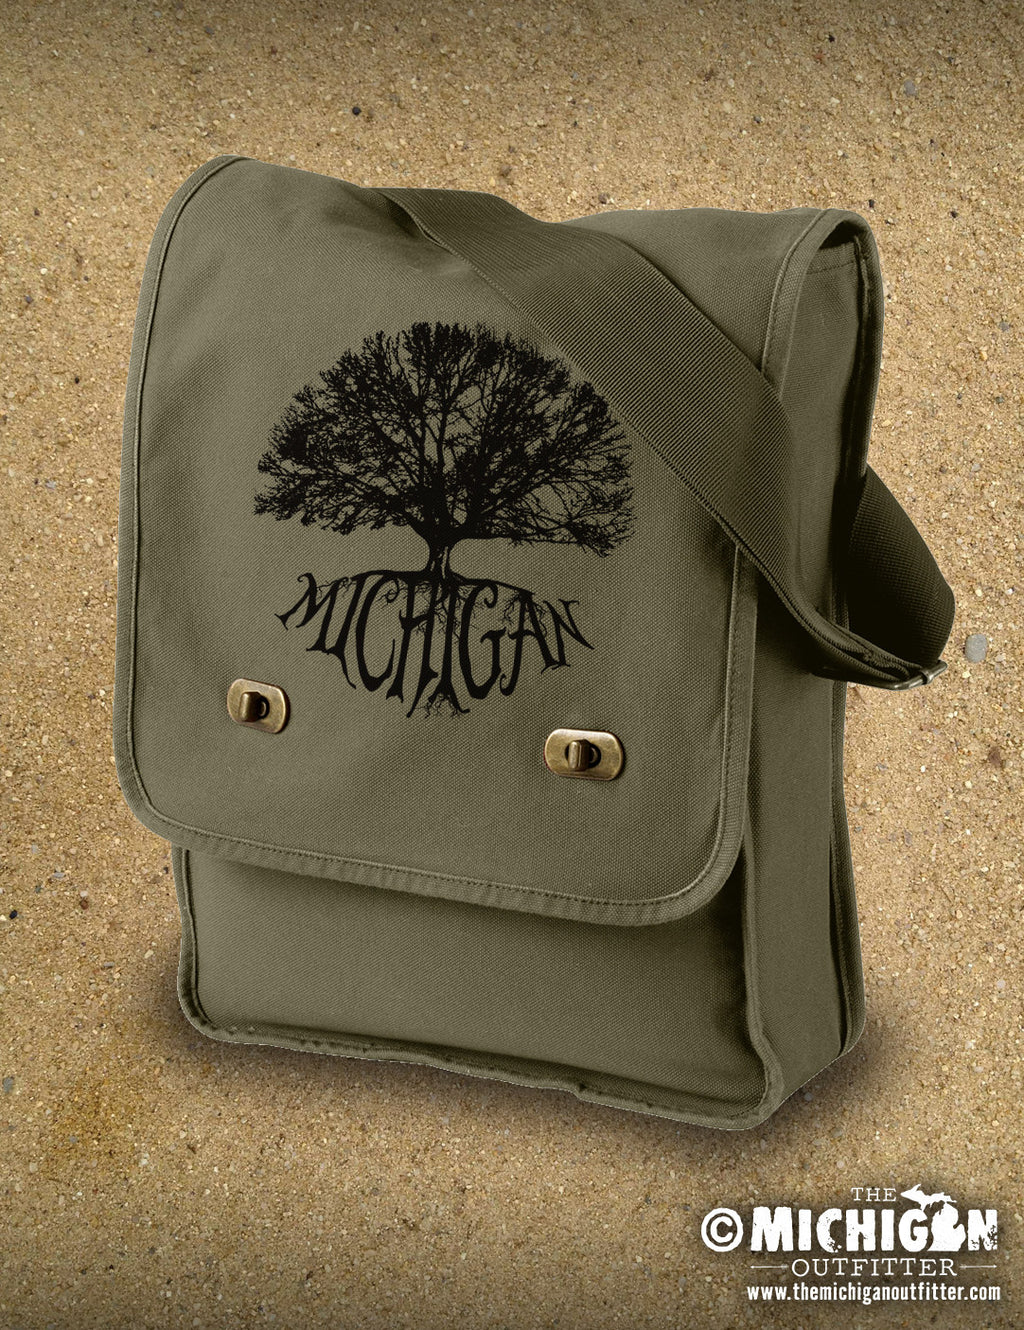 Canvas Field Bag - Michigan Big Tree - Khaki Green